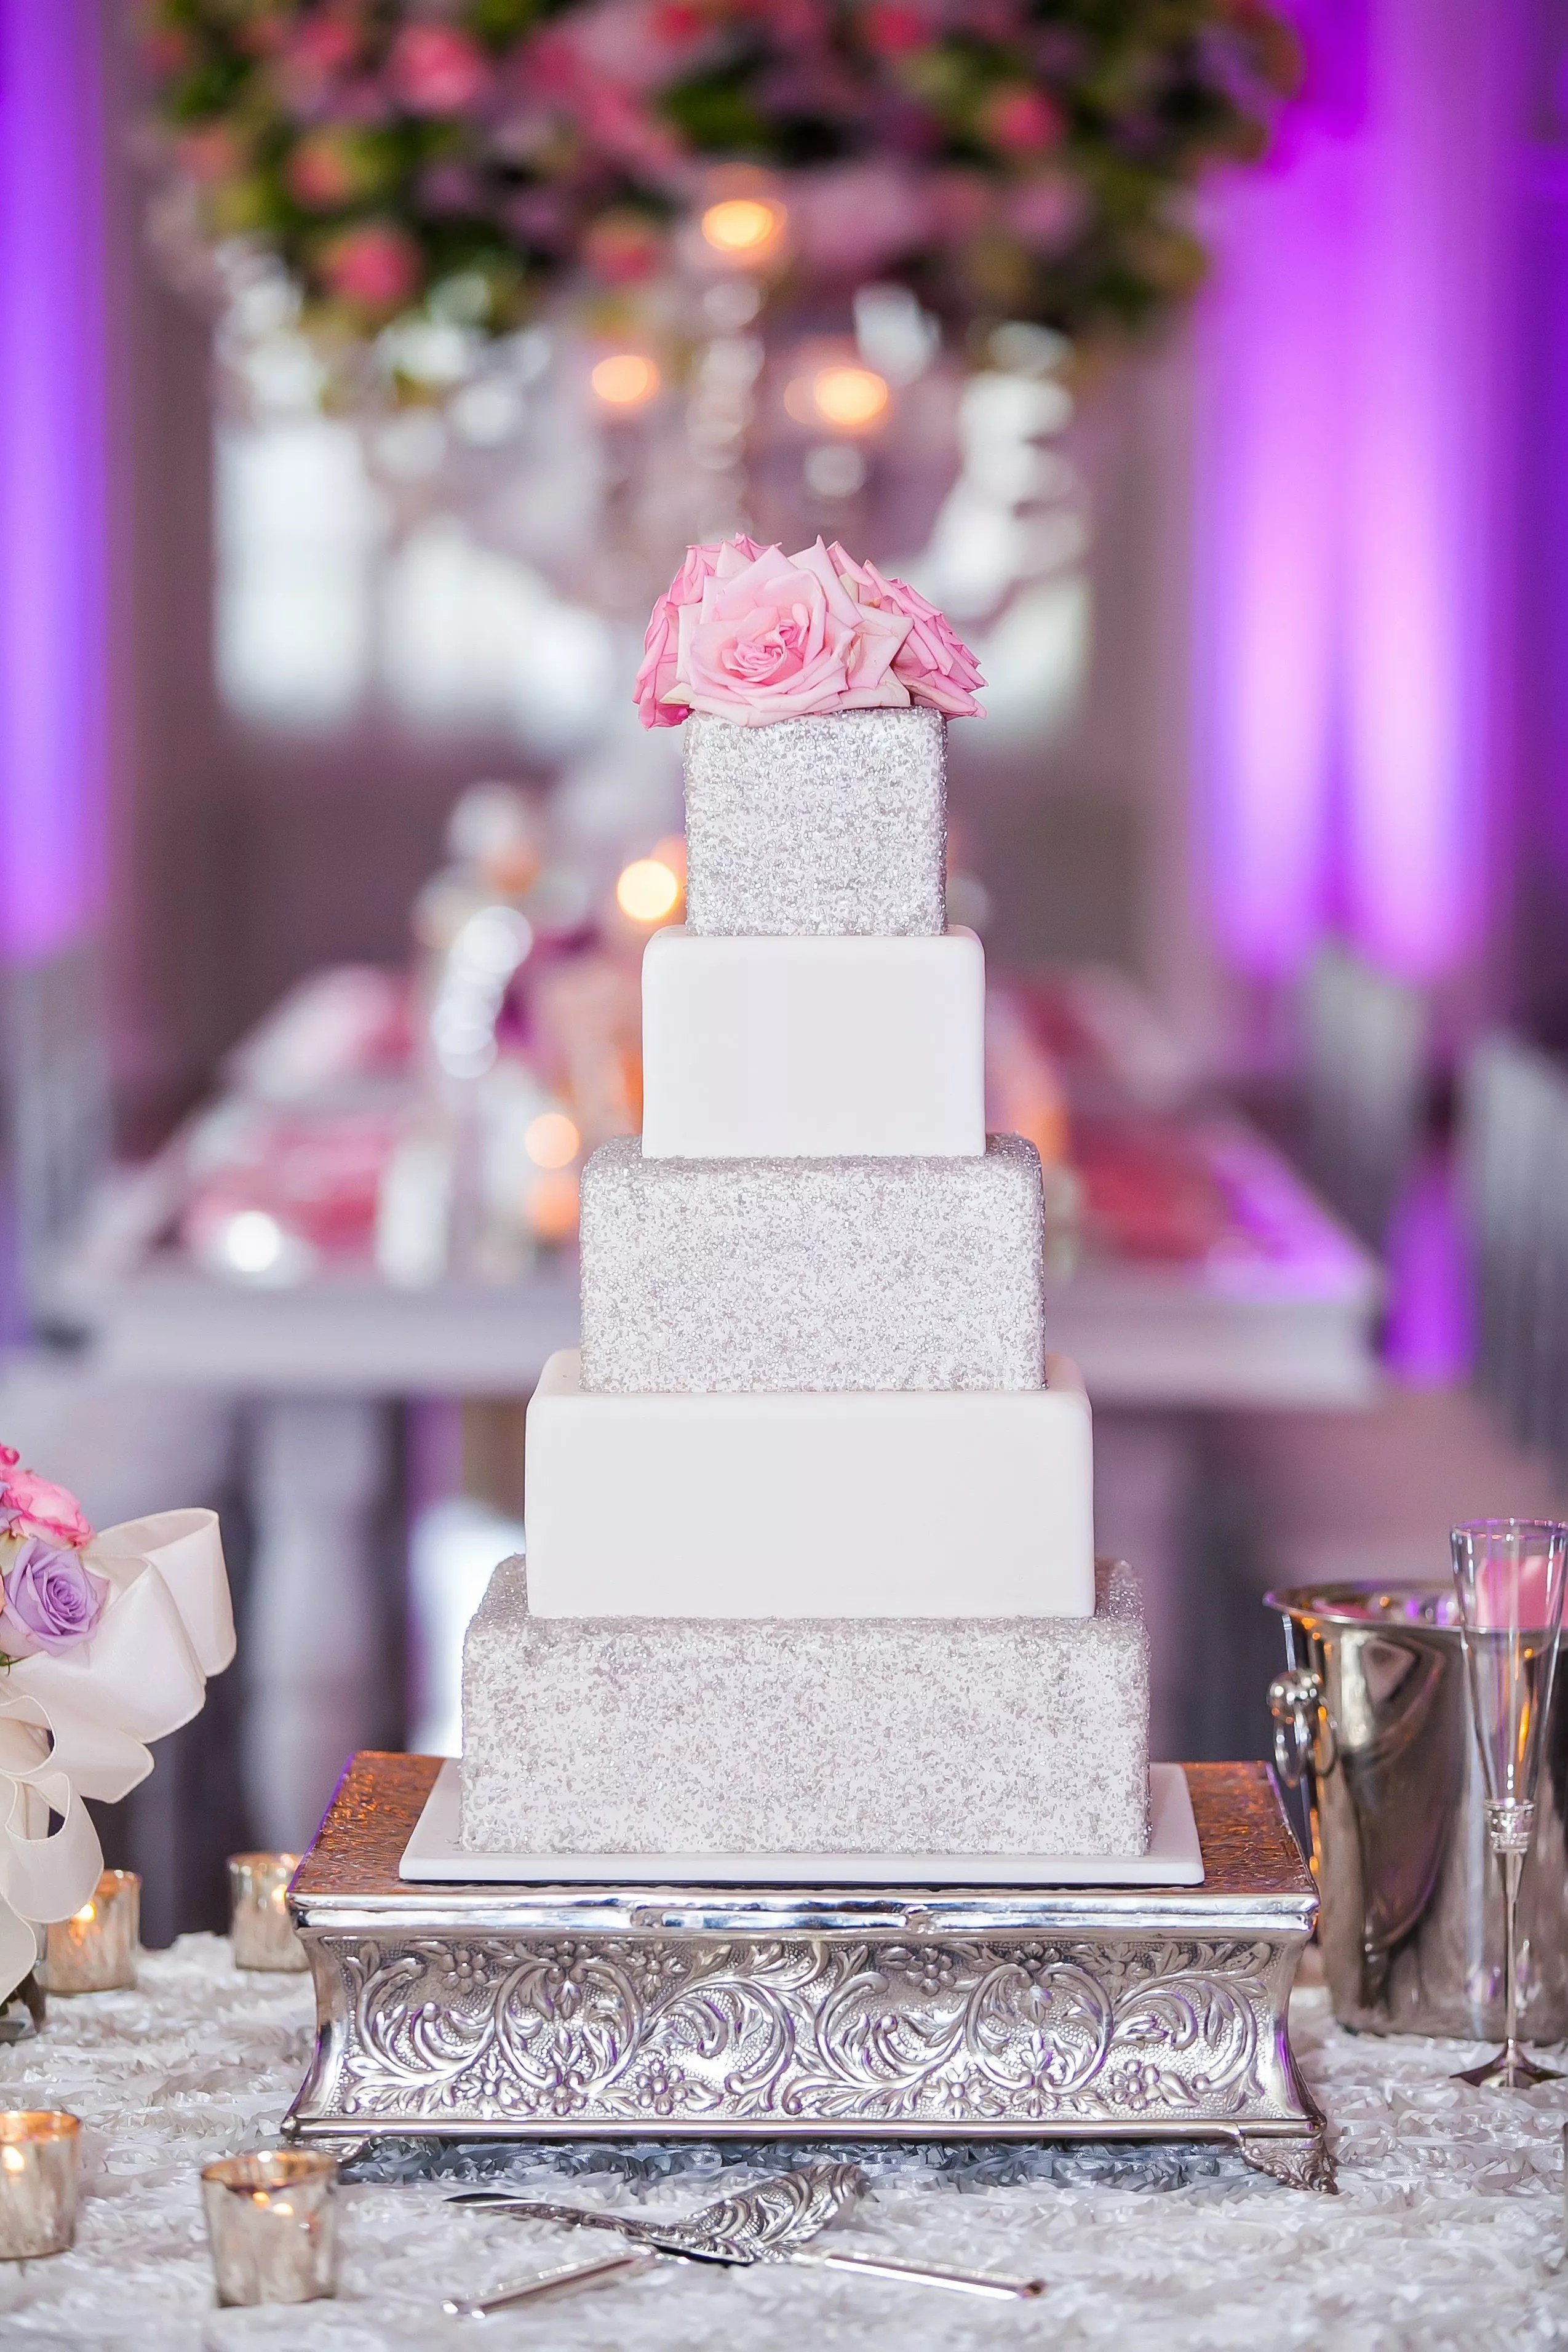 Glam Wedding Cake With Silver Glitter